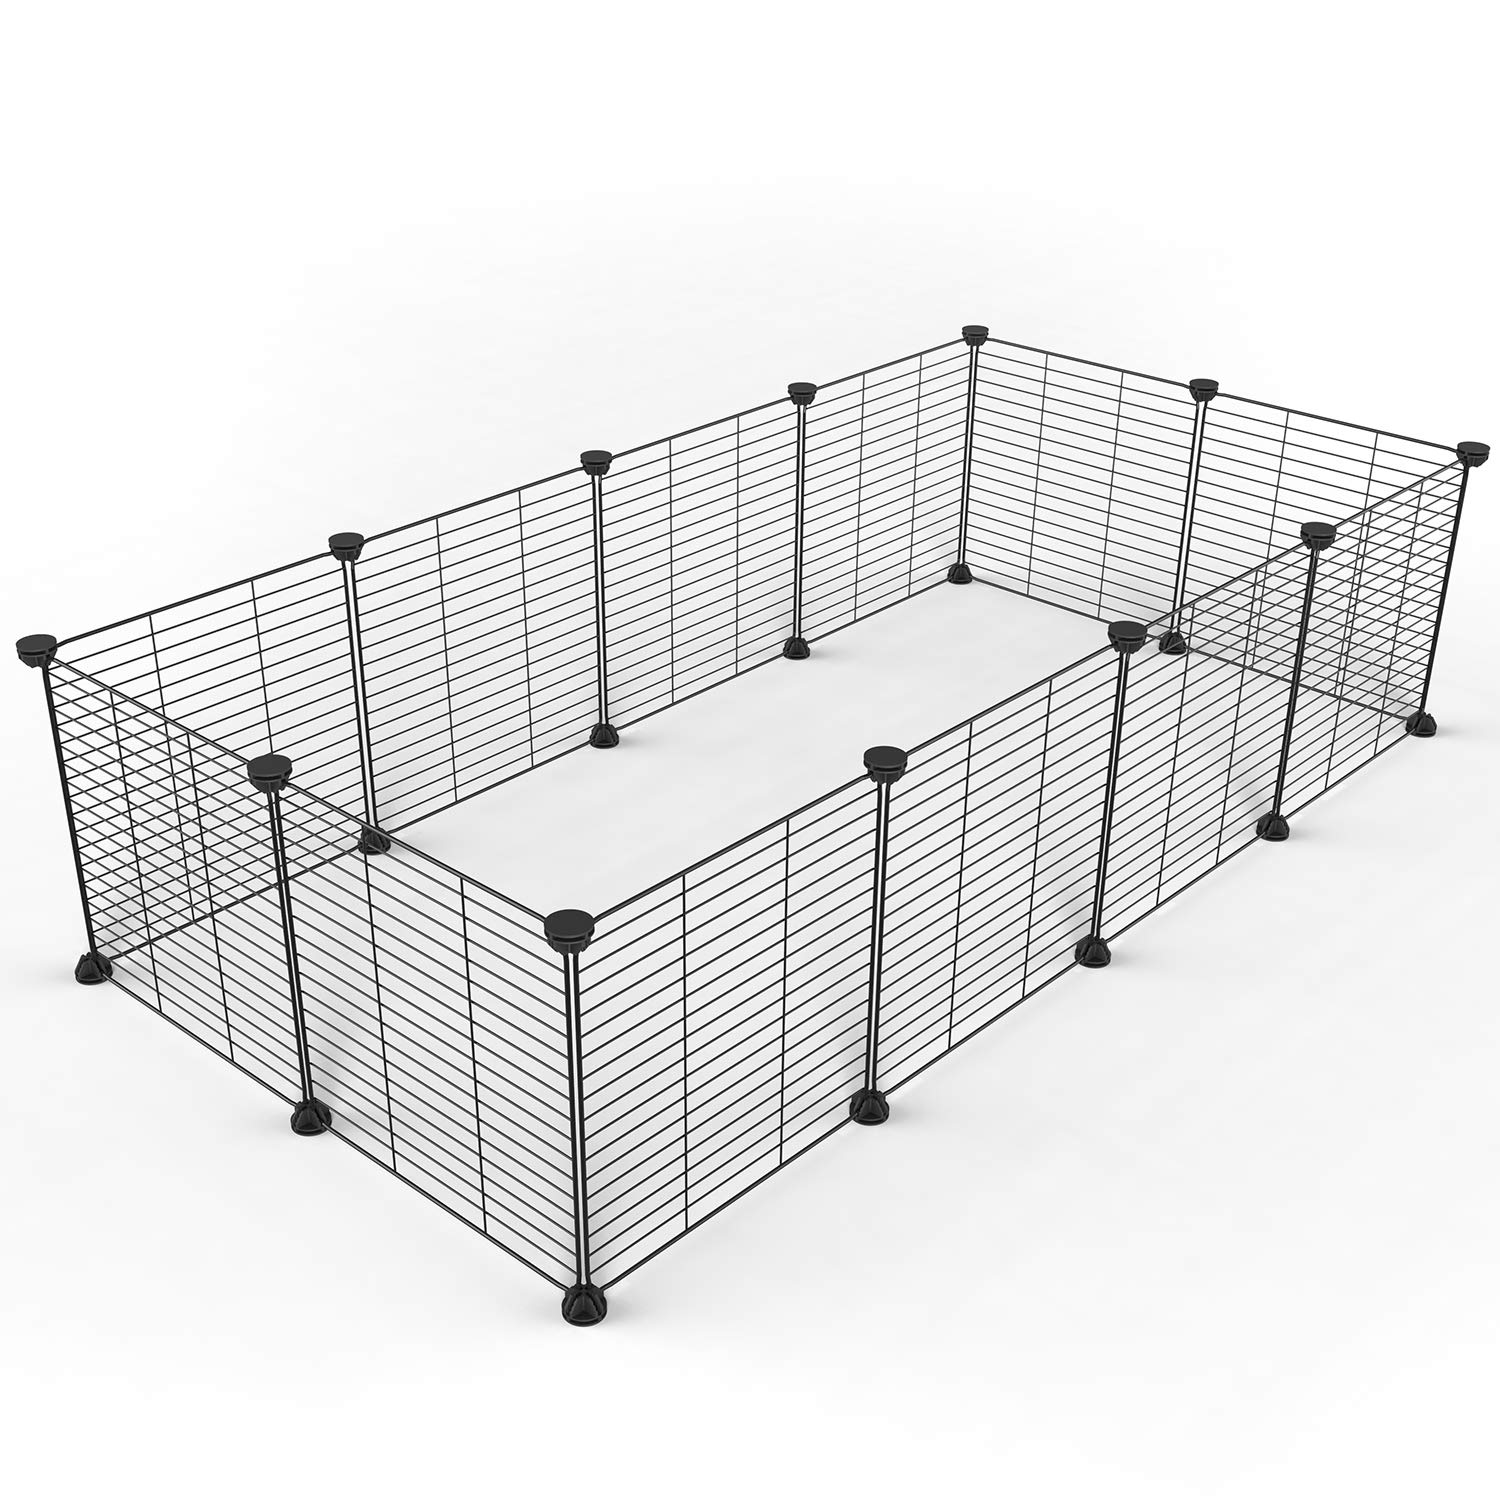 12 panels Tespo Pet Playpen Animal Fence Cage DIY Exercise Pen Crate Kennel Hutch Small Animals, Bunny, Rabbit, Puppy & Guinea Pigs, Indoor Upgrade 12 Panels